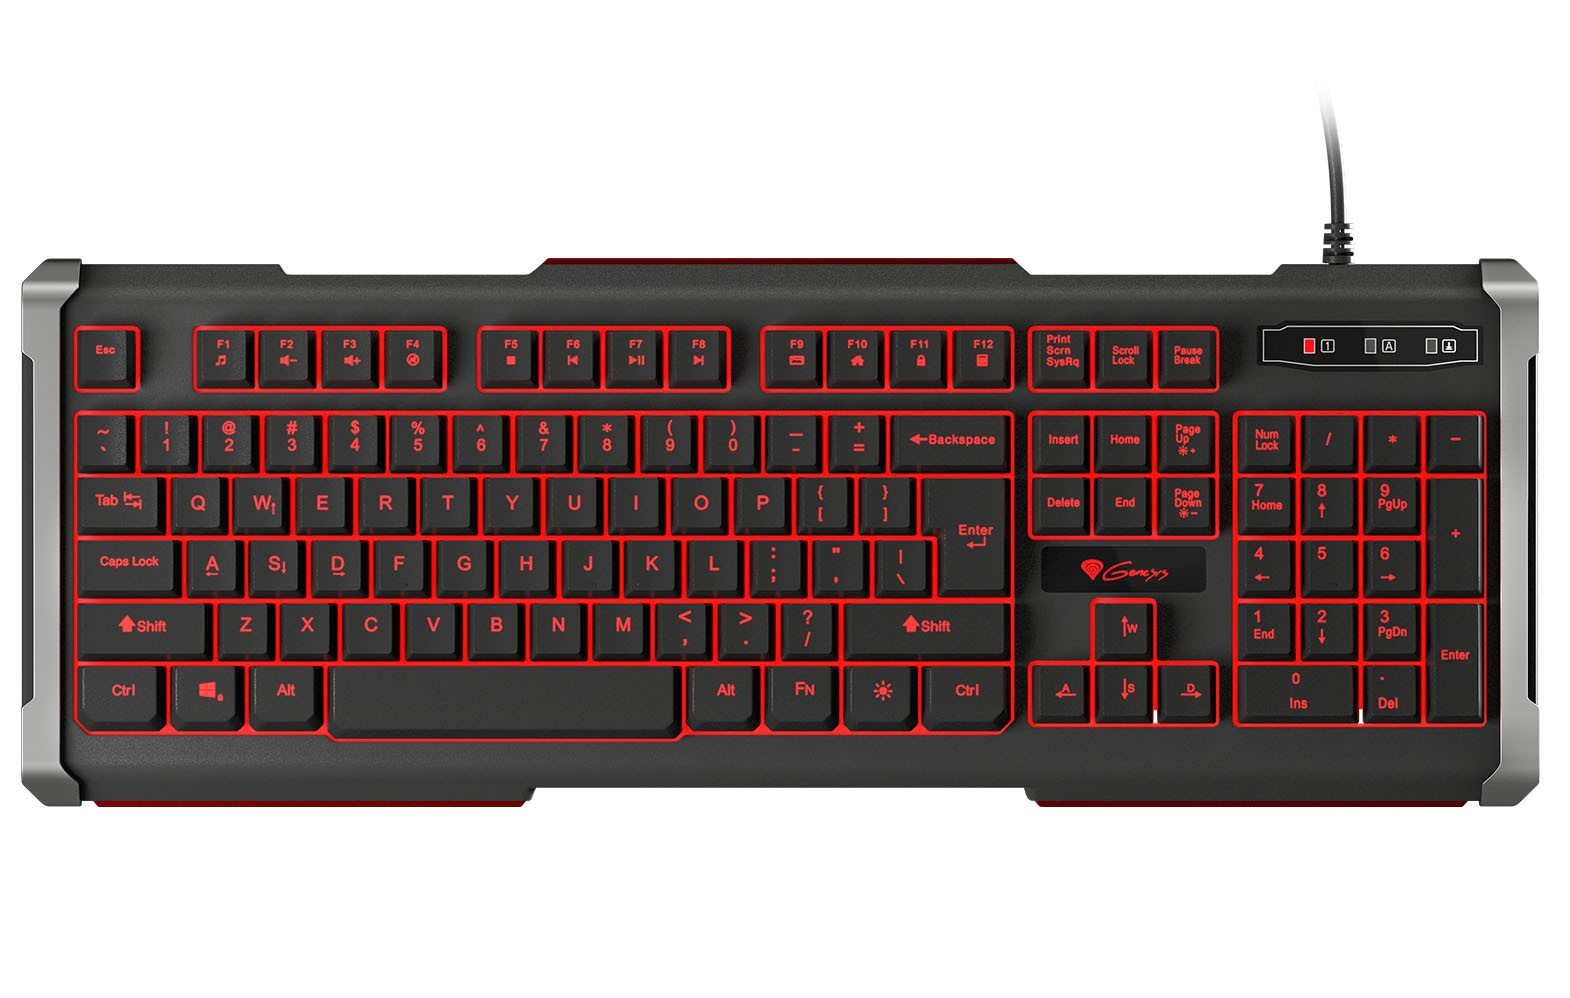 GENESIS RHOD 400 US GAMING KEYBOARD